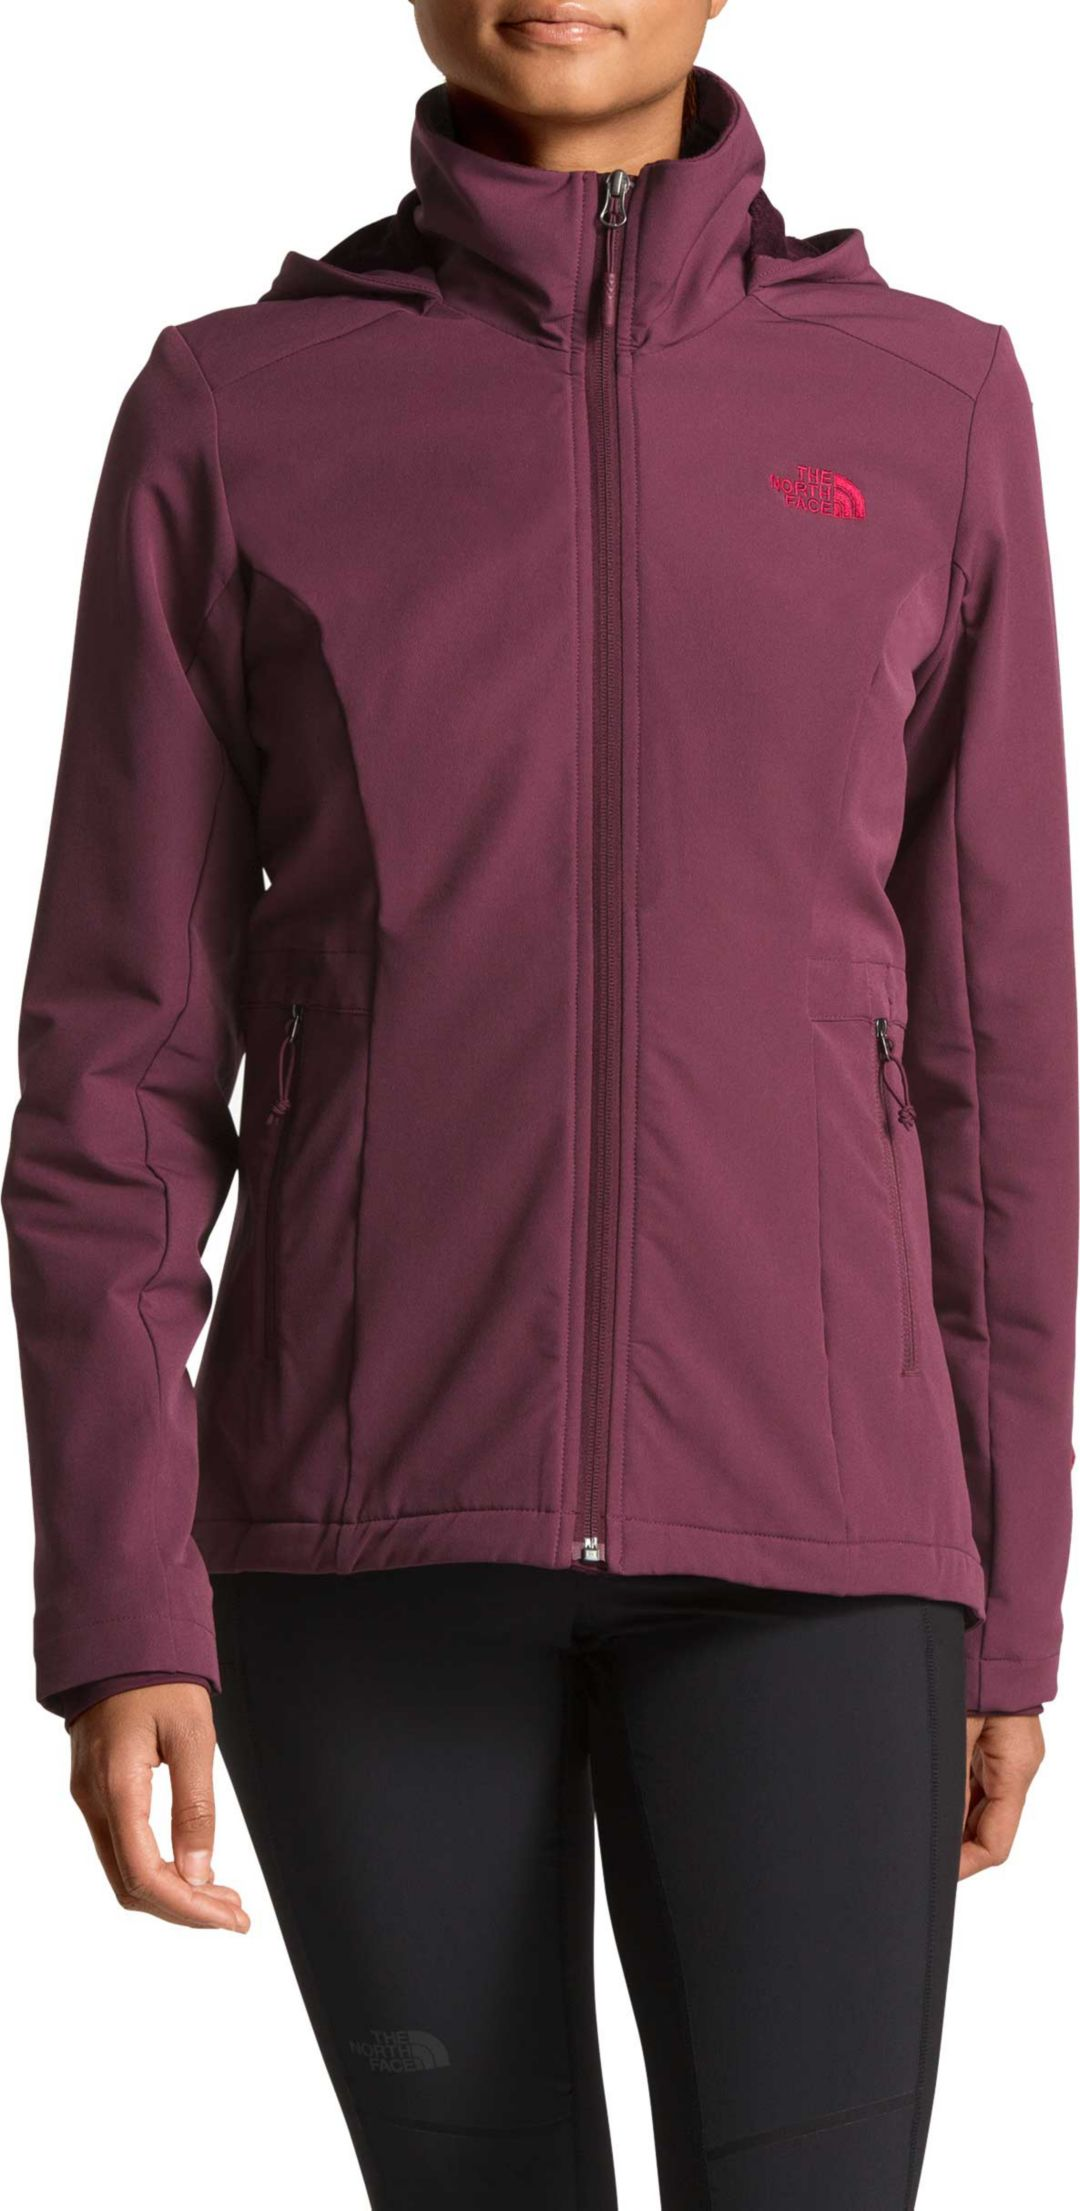 7a211c5c3 The North Face Women's Shelbe Raschel Soft Shell Jacket